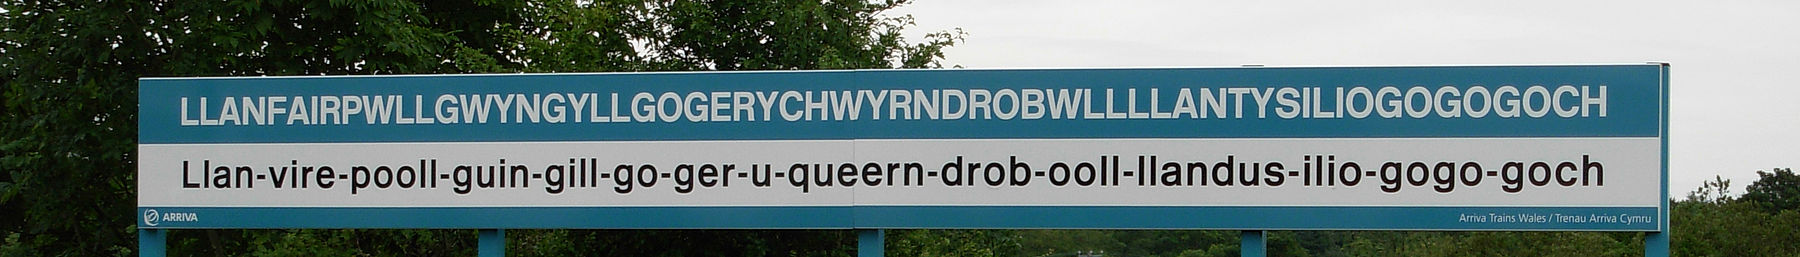 Llanfair railway station sign banner.jpg